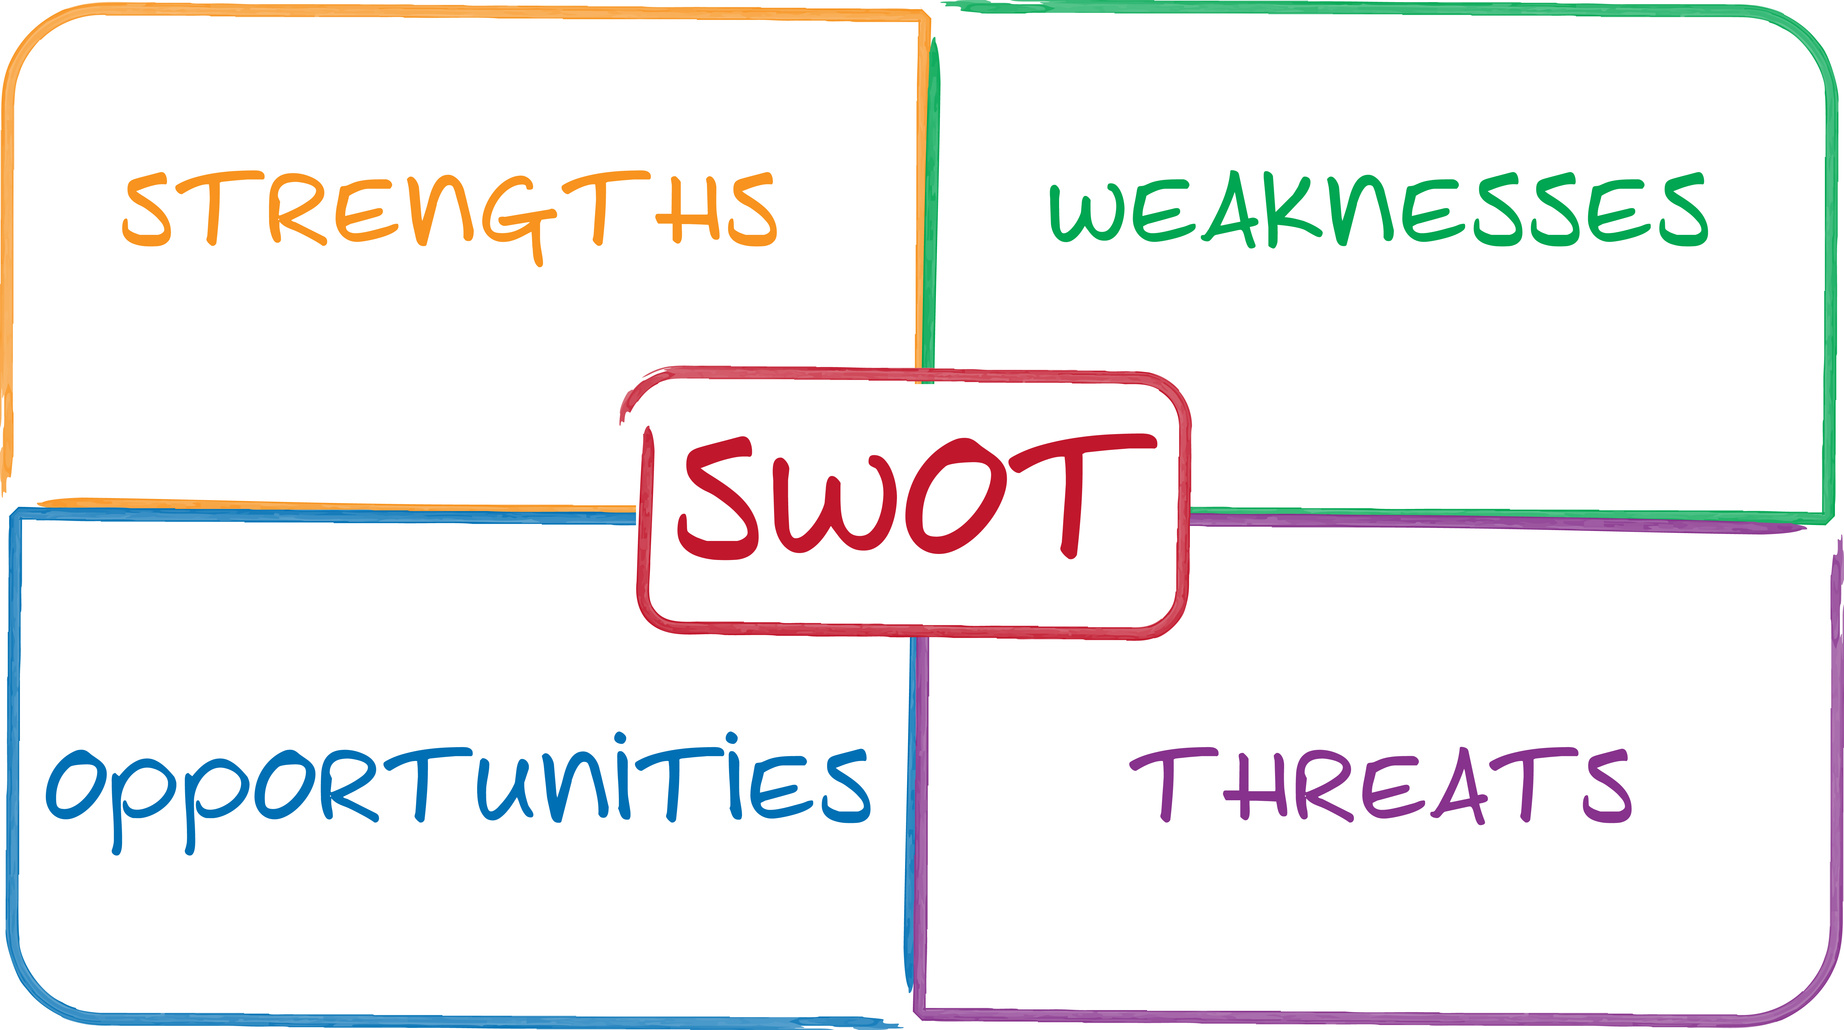 how does swot analysis help a business Business strategies  swot analysis for strategic decision making written by gregory steffens for gaebler ventures all businesses have goals that involve creating a sustainable competitive advantage over their competitors.